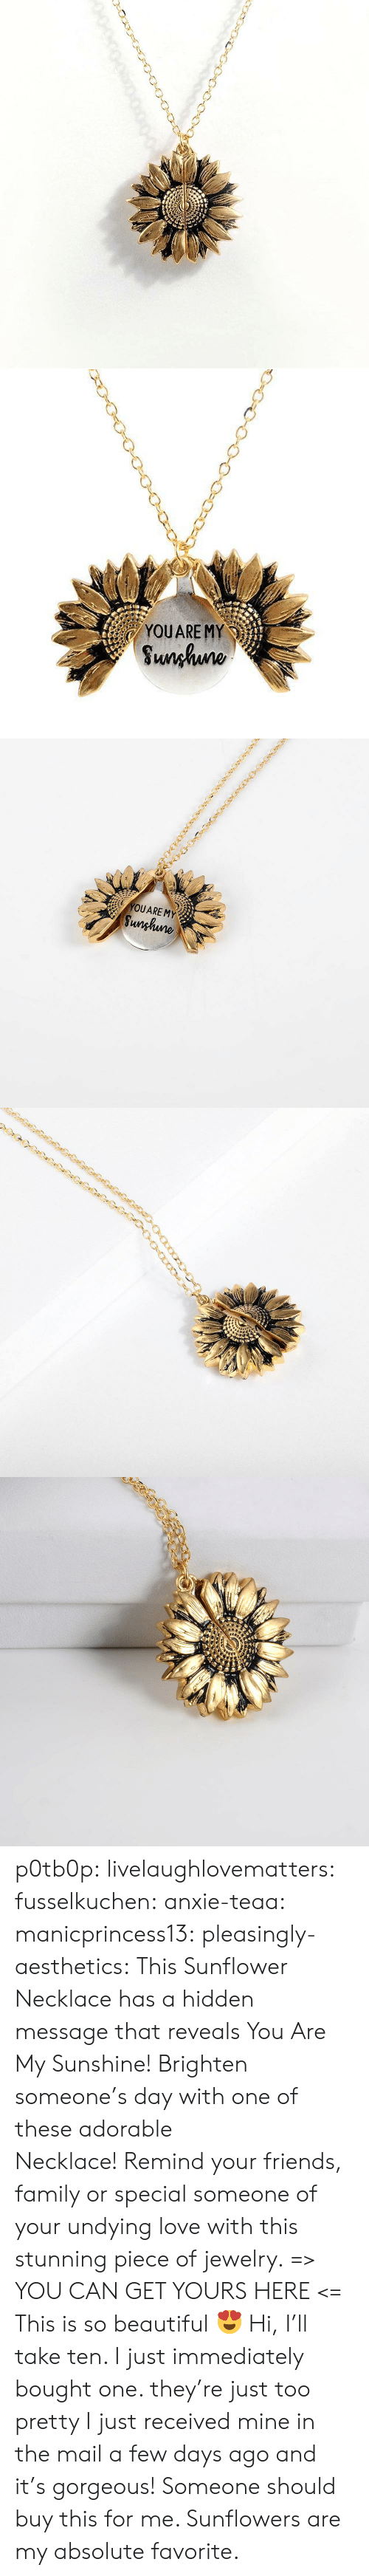 So Beautiful: YOUARE MY  Sunhuno   YOUARE MY  Sunghune p0tb0p:  livelaughlovematters: fusselkuchen:  anxie-teaa:   manicprincess13:   pleasingly-aesthetics:  This Sunflower Necklace has a hidden message that reveals You Are My Sunshine! Brighten someone's day with one of these adorable Necklace! Remind your friends, family or special someone of your undying love with this stunning piece of jewelry. => YOU CAN GET YOURS HERE <=   This is so beautiful 😍    Hi, I'll take ten.    I just immediately bought one. they're just too pretty   I just received mine in the mail a few days ago and it's gorgeous!   Someone should buy this for me. Sunflowers are my absolute favorite.